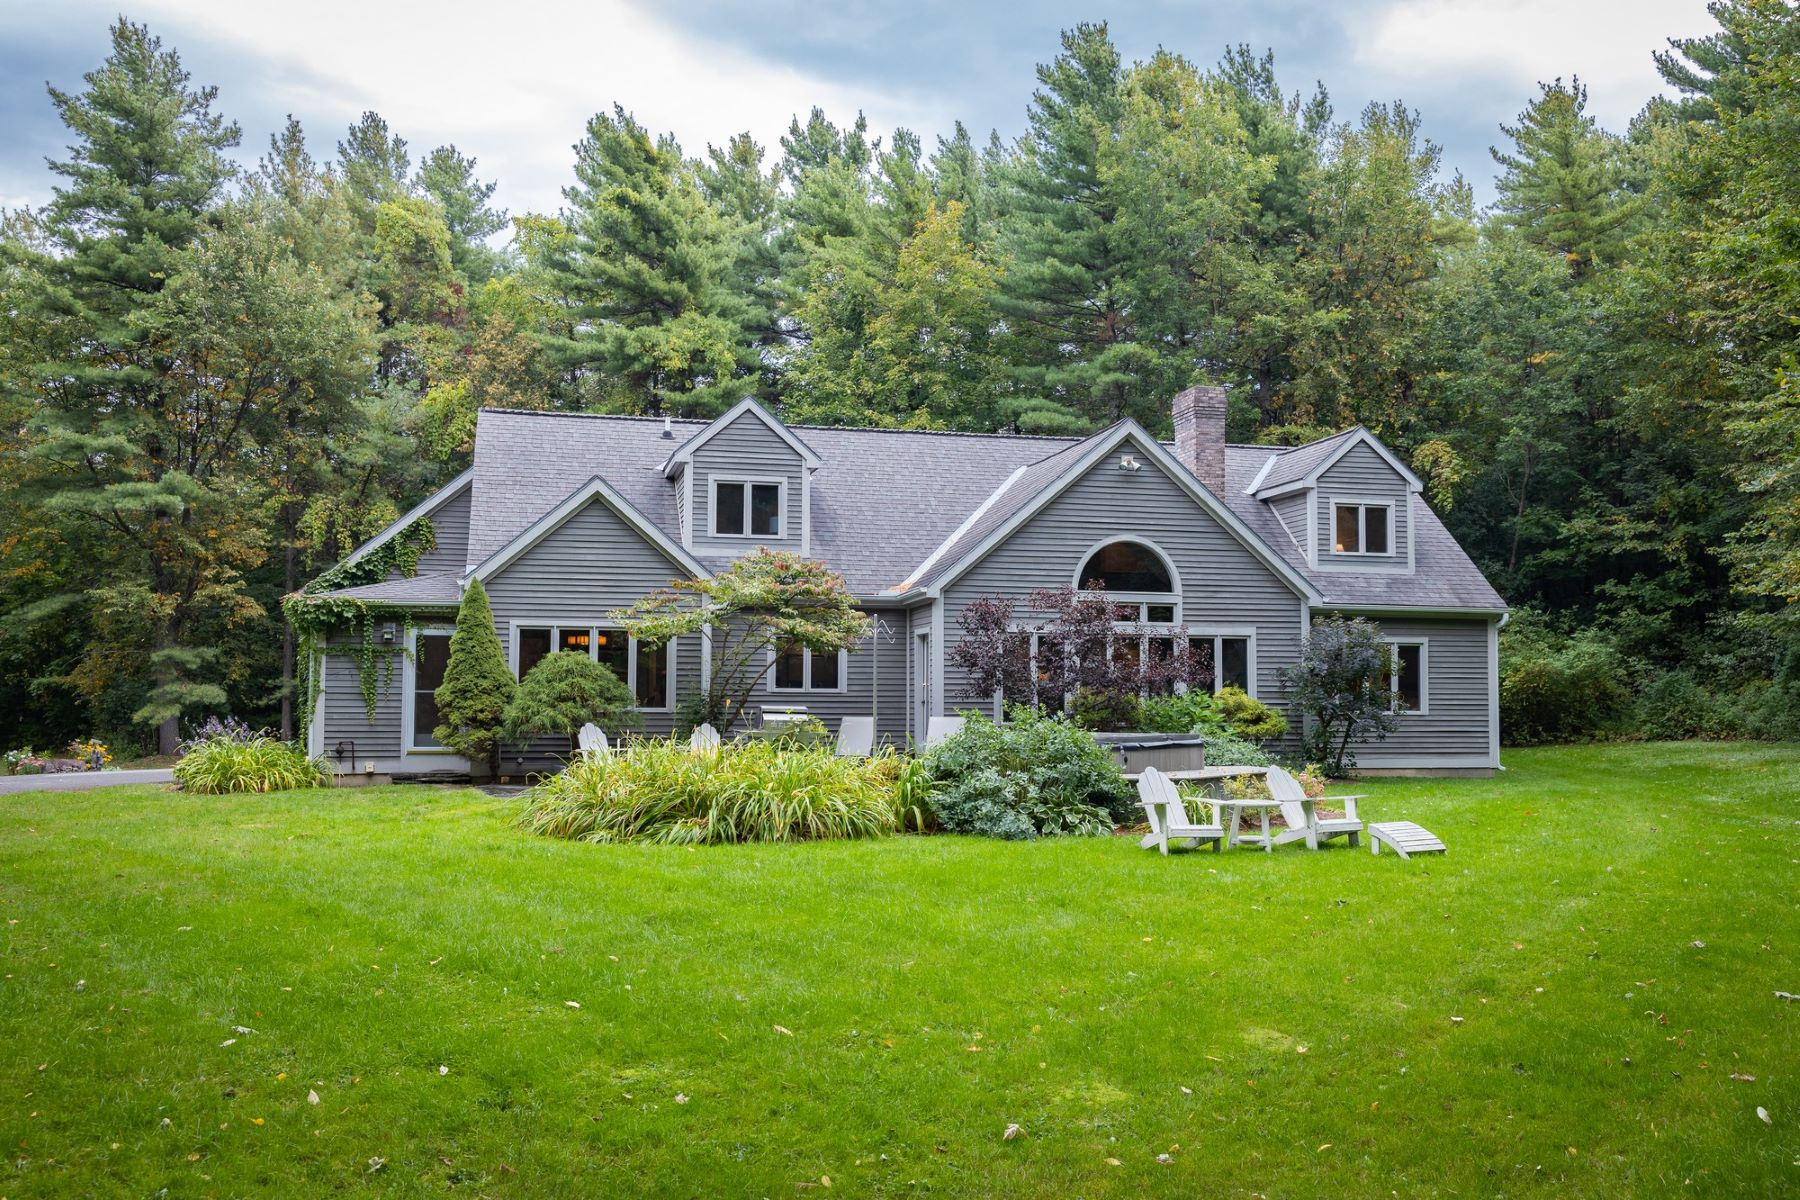 Single Family Homes for Sale at 23 Bluebell Lane, Williston 23 Bluebell Ln Williston, Vermont 05495 United States